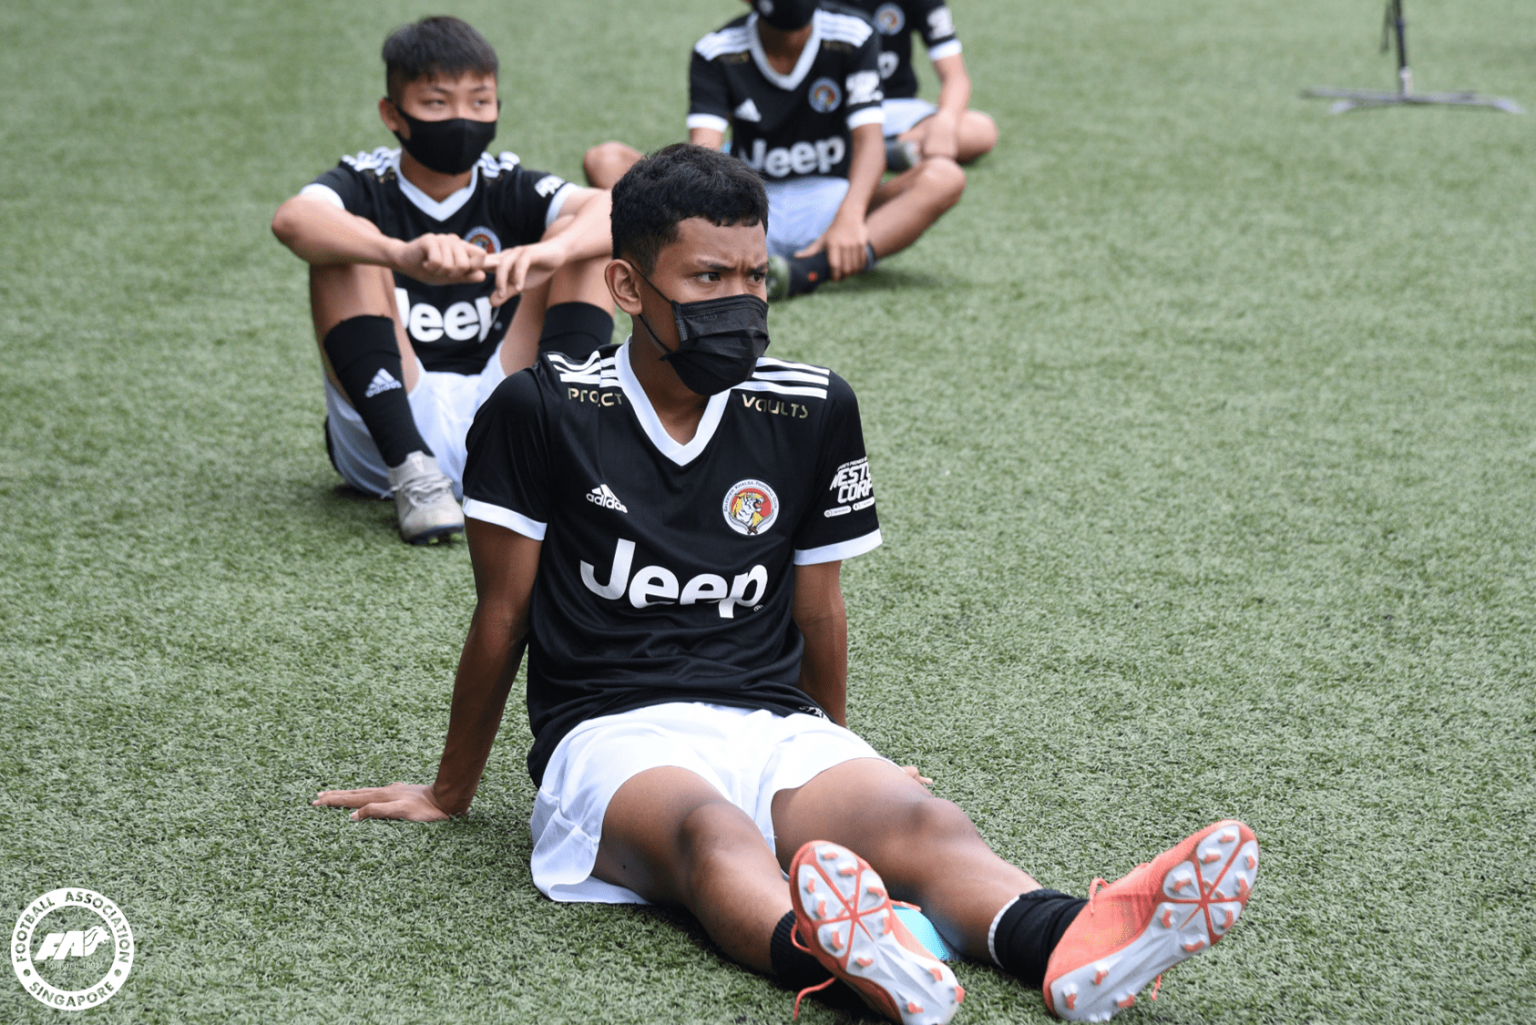 Update on status of football activities in Singapore from 16 May 2021